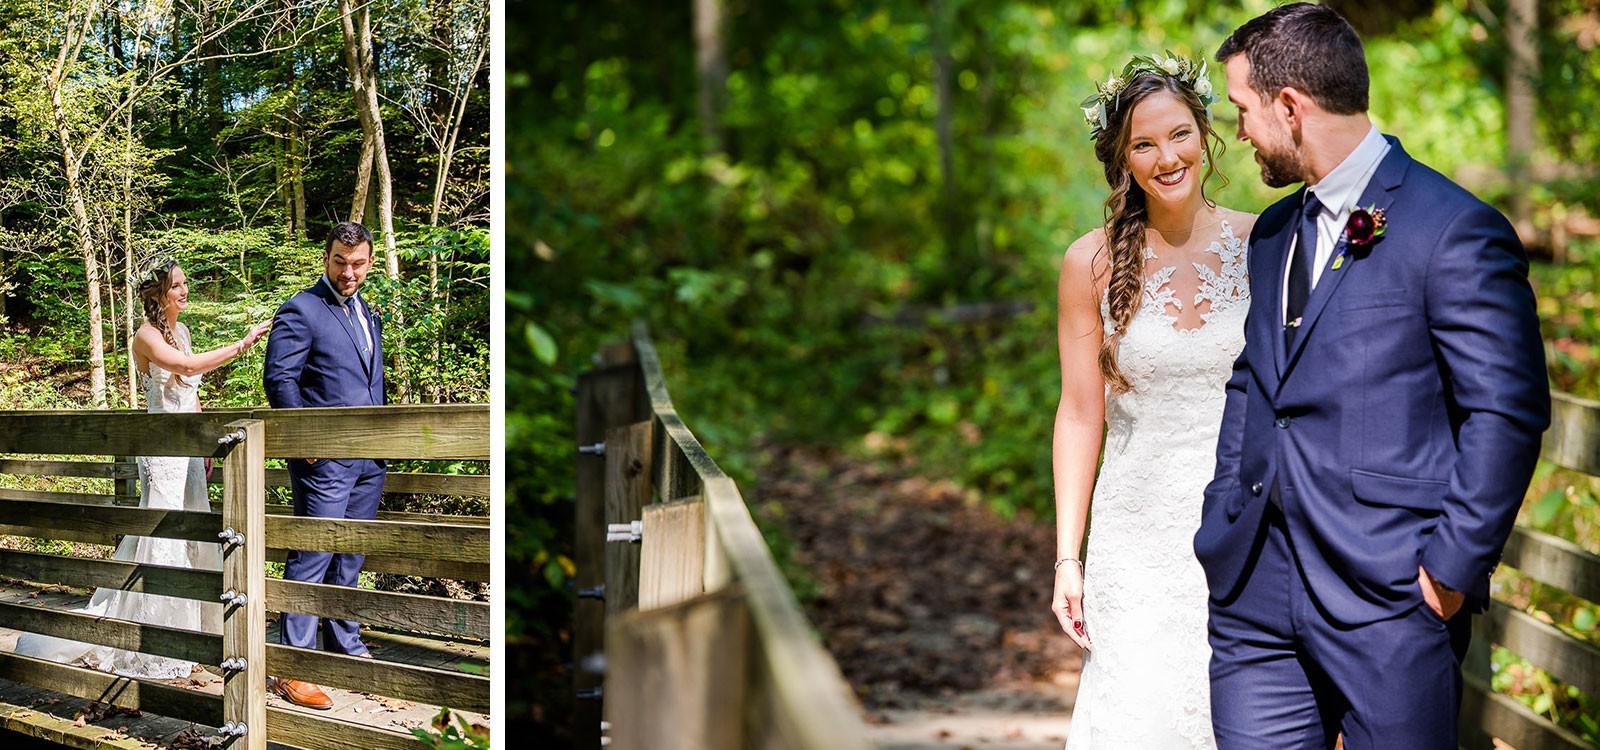 Eric_and_Christy_Photography_Blog_Stephanie_Nick_Wedding-15-16